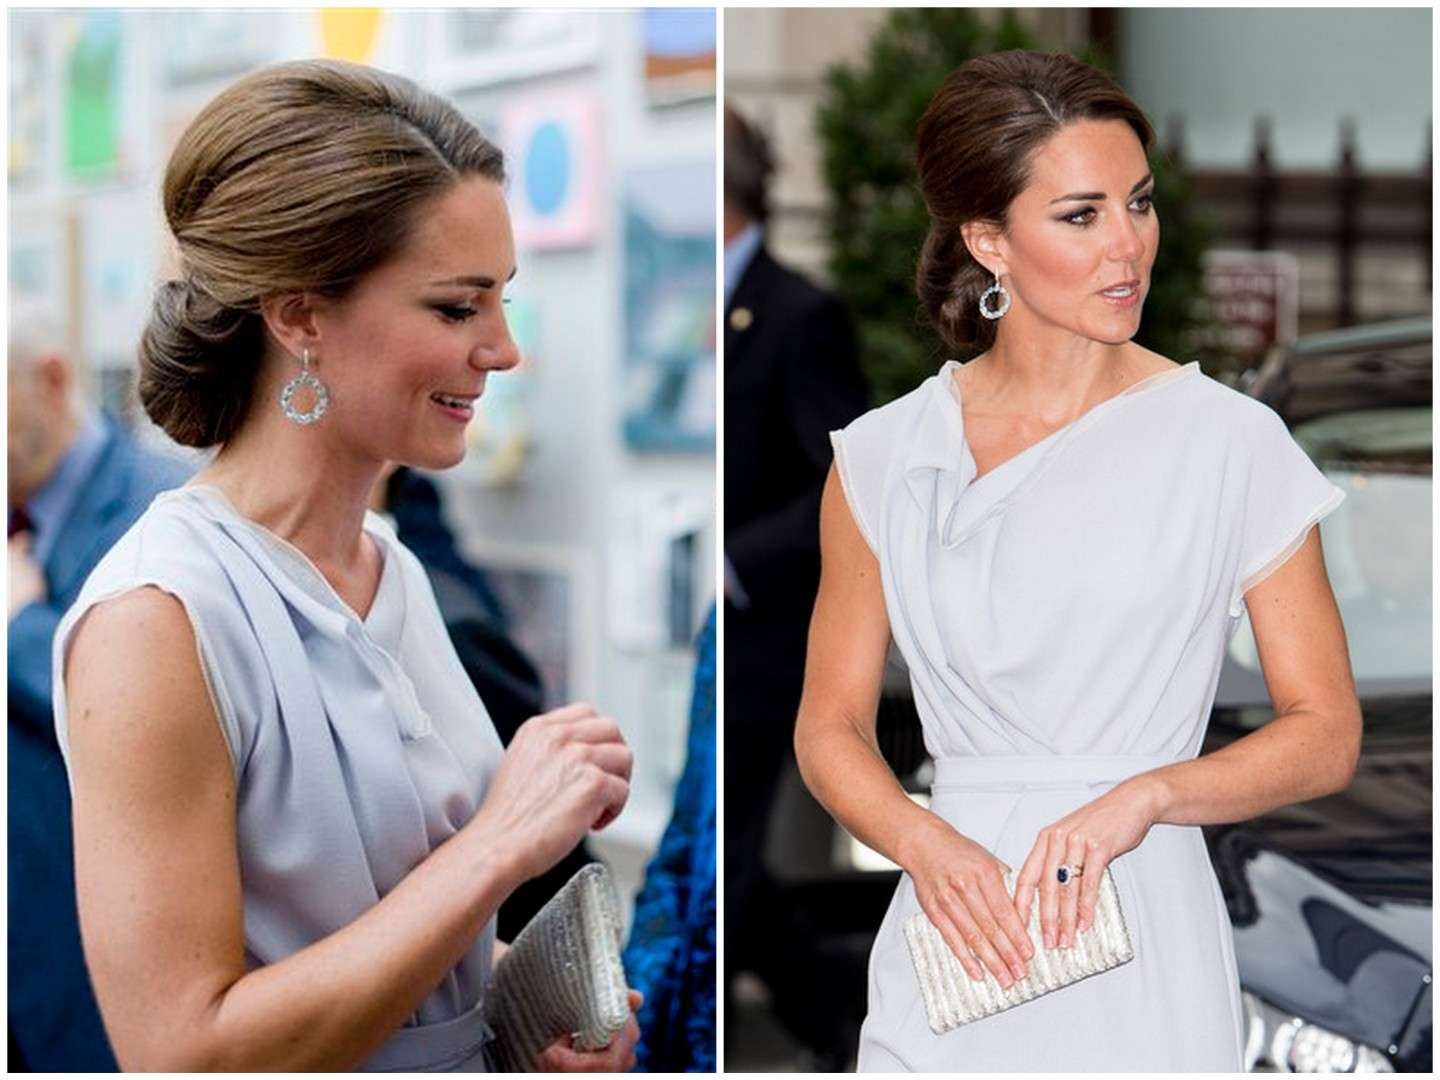 Kate Middleton con lo chignon regale